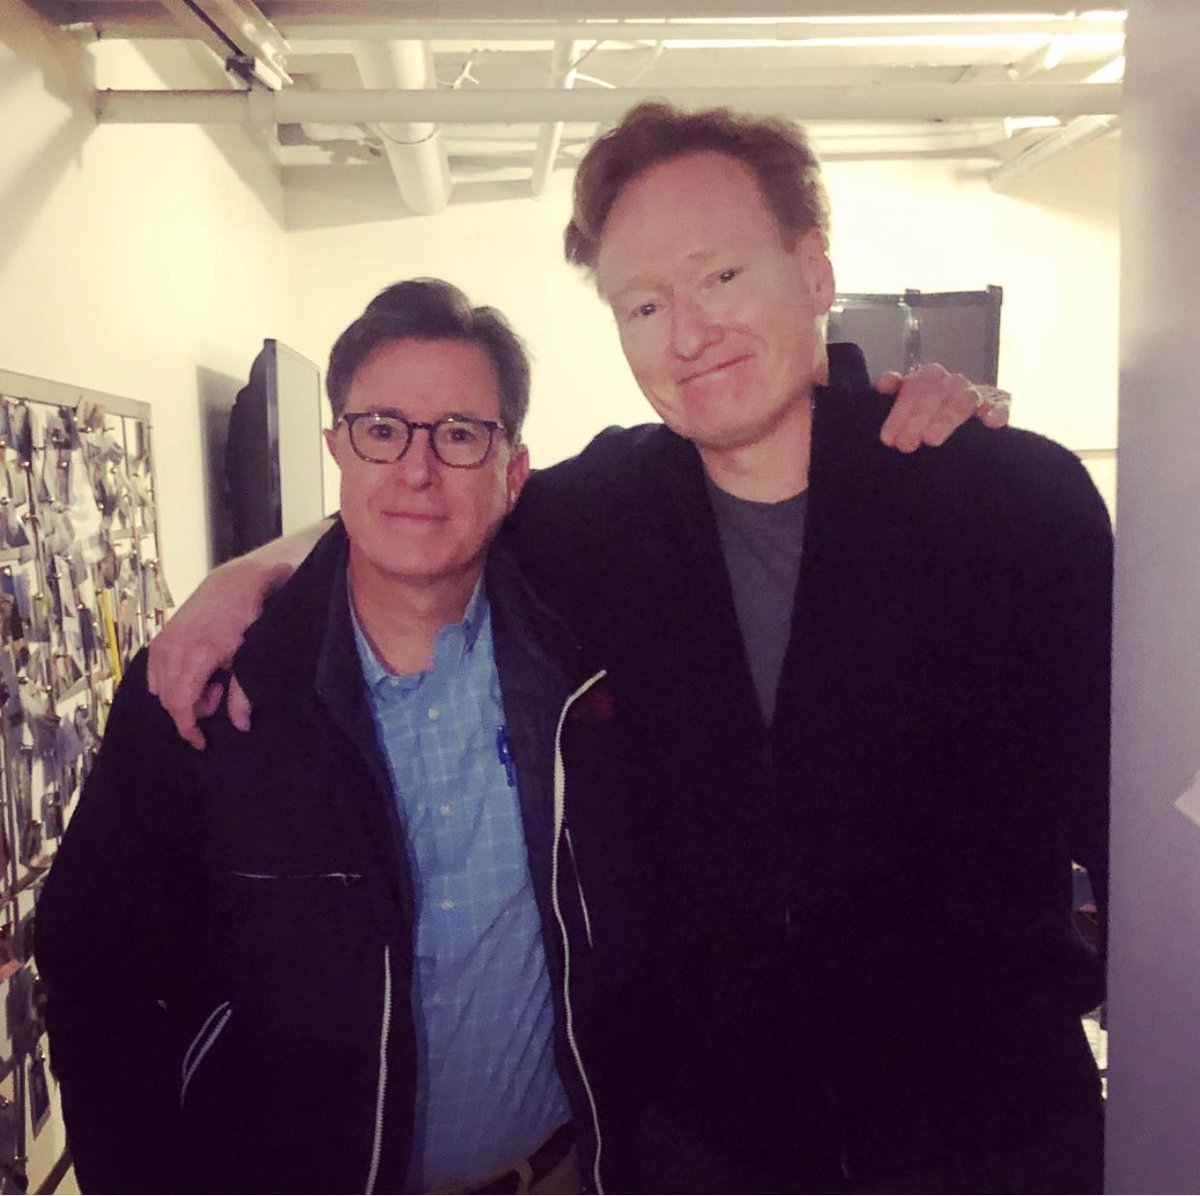 I flew to New York City for an intense and meaningful mind meld with my long lost comedy brother @StephenAtHome. http://applepodcasts.com/teamcoco